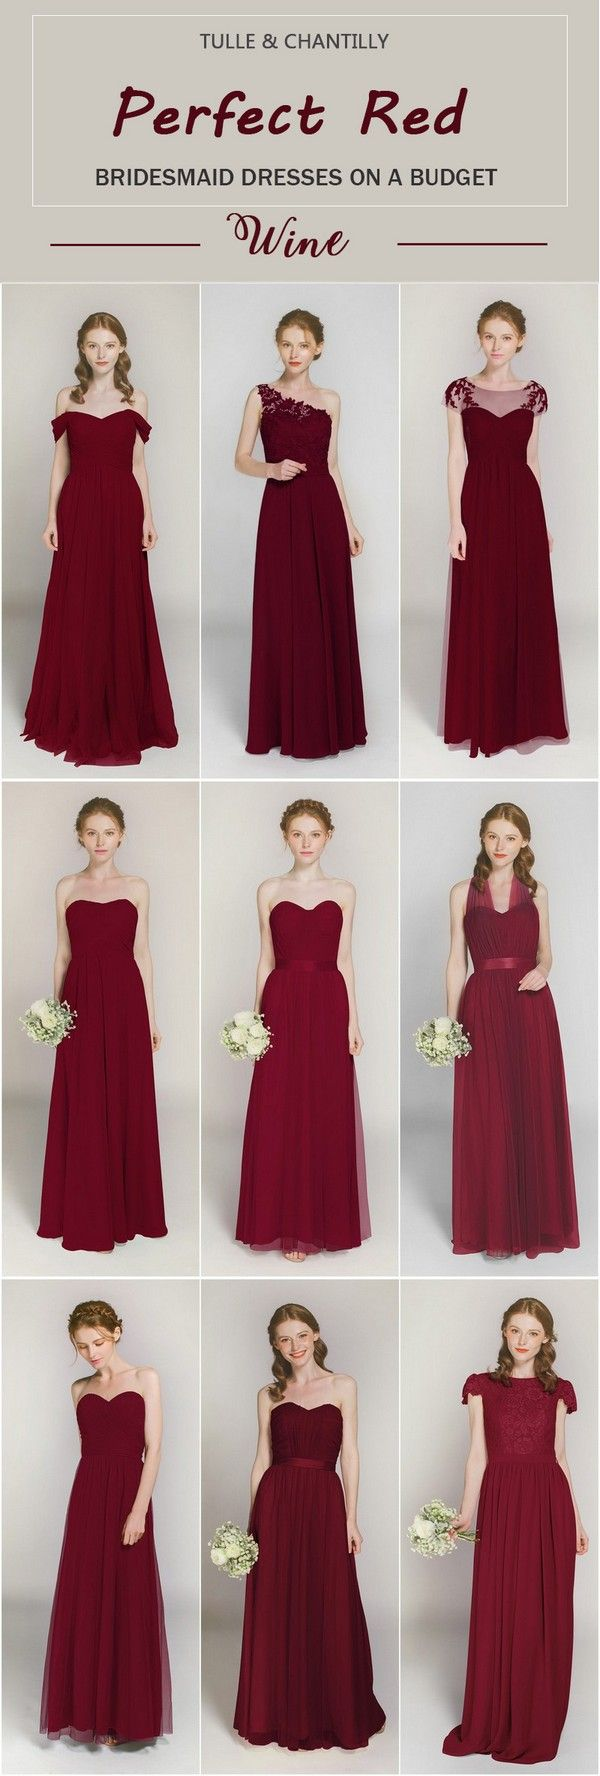 Best 25+ Wine dress ideas on Pinterest | Wine red dress ...